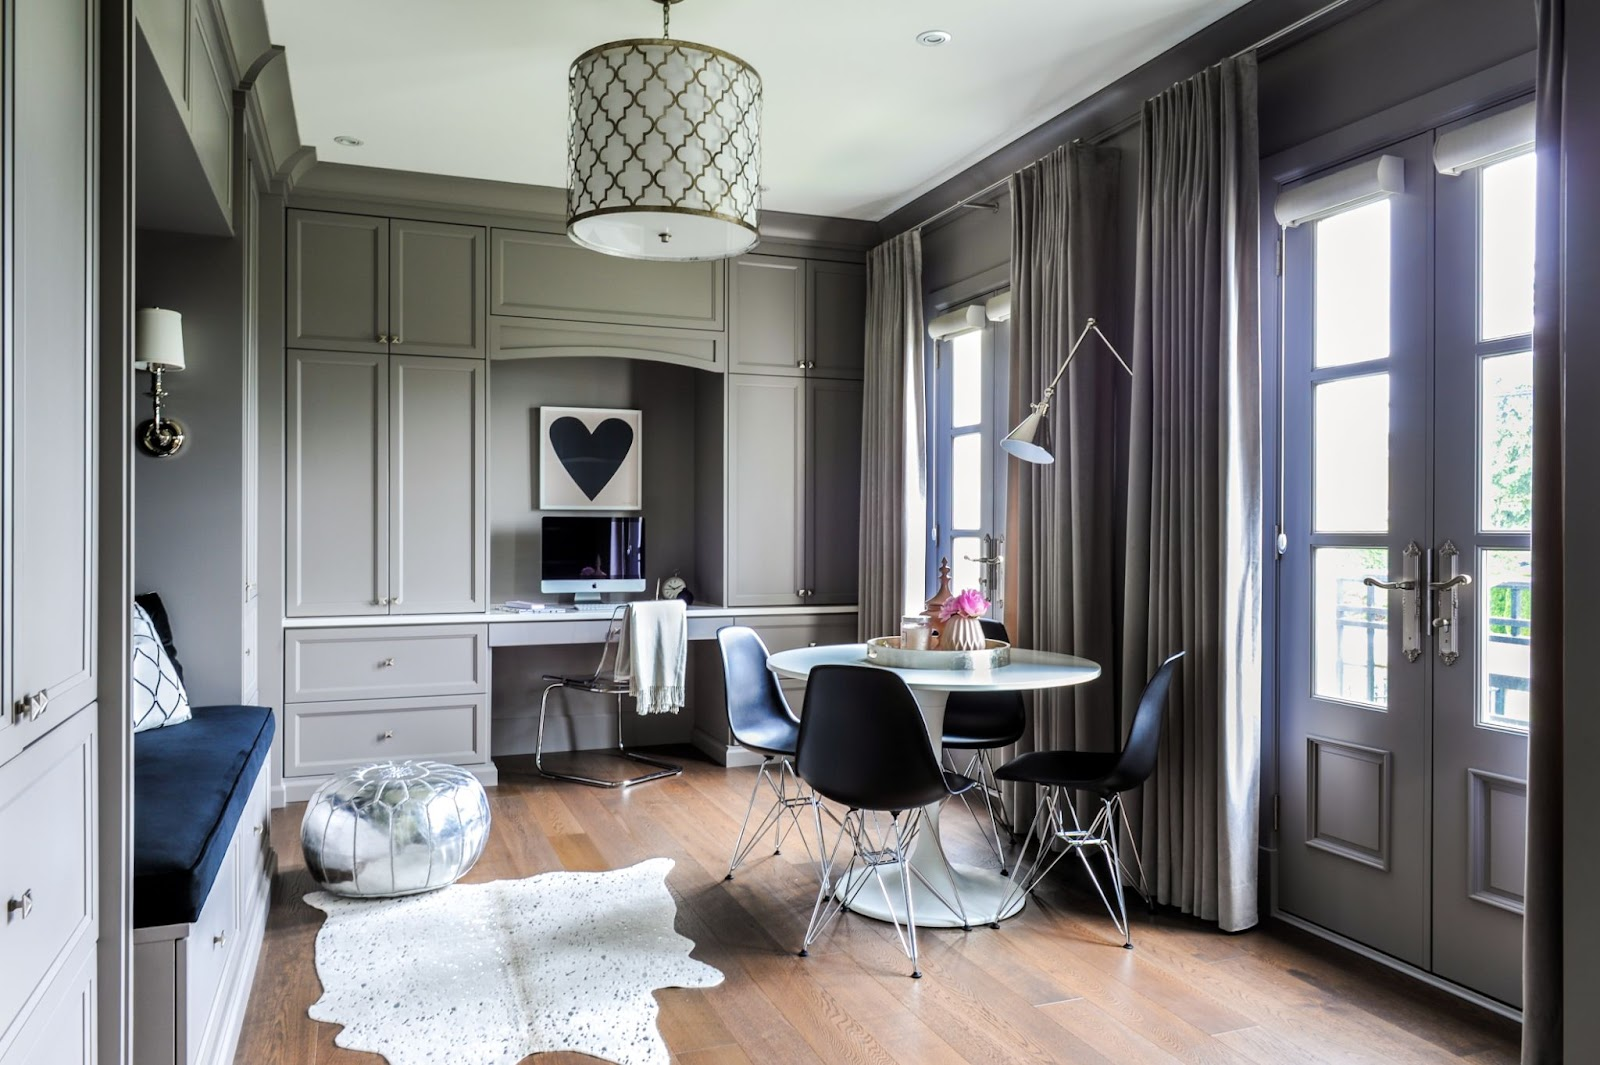 maria-decotiis-whistler-ca-invest-in-interior-designer-round-small-table-with-gray-room-built-in-bench-seating